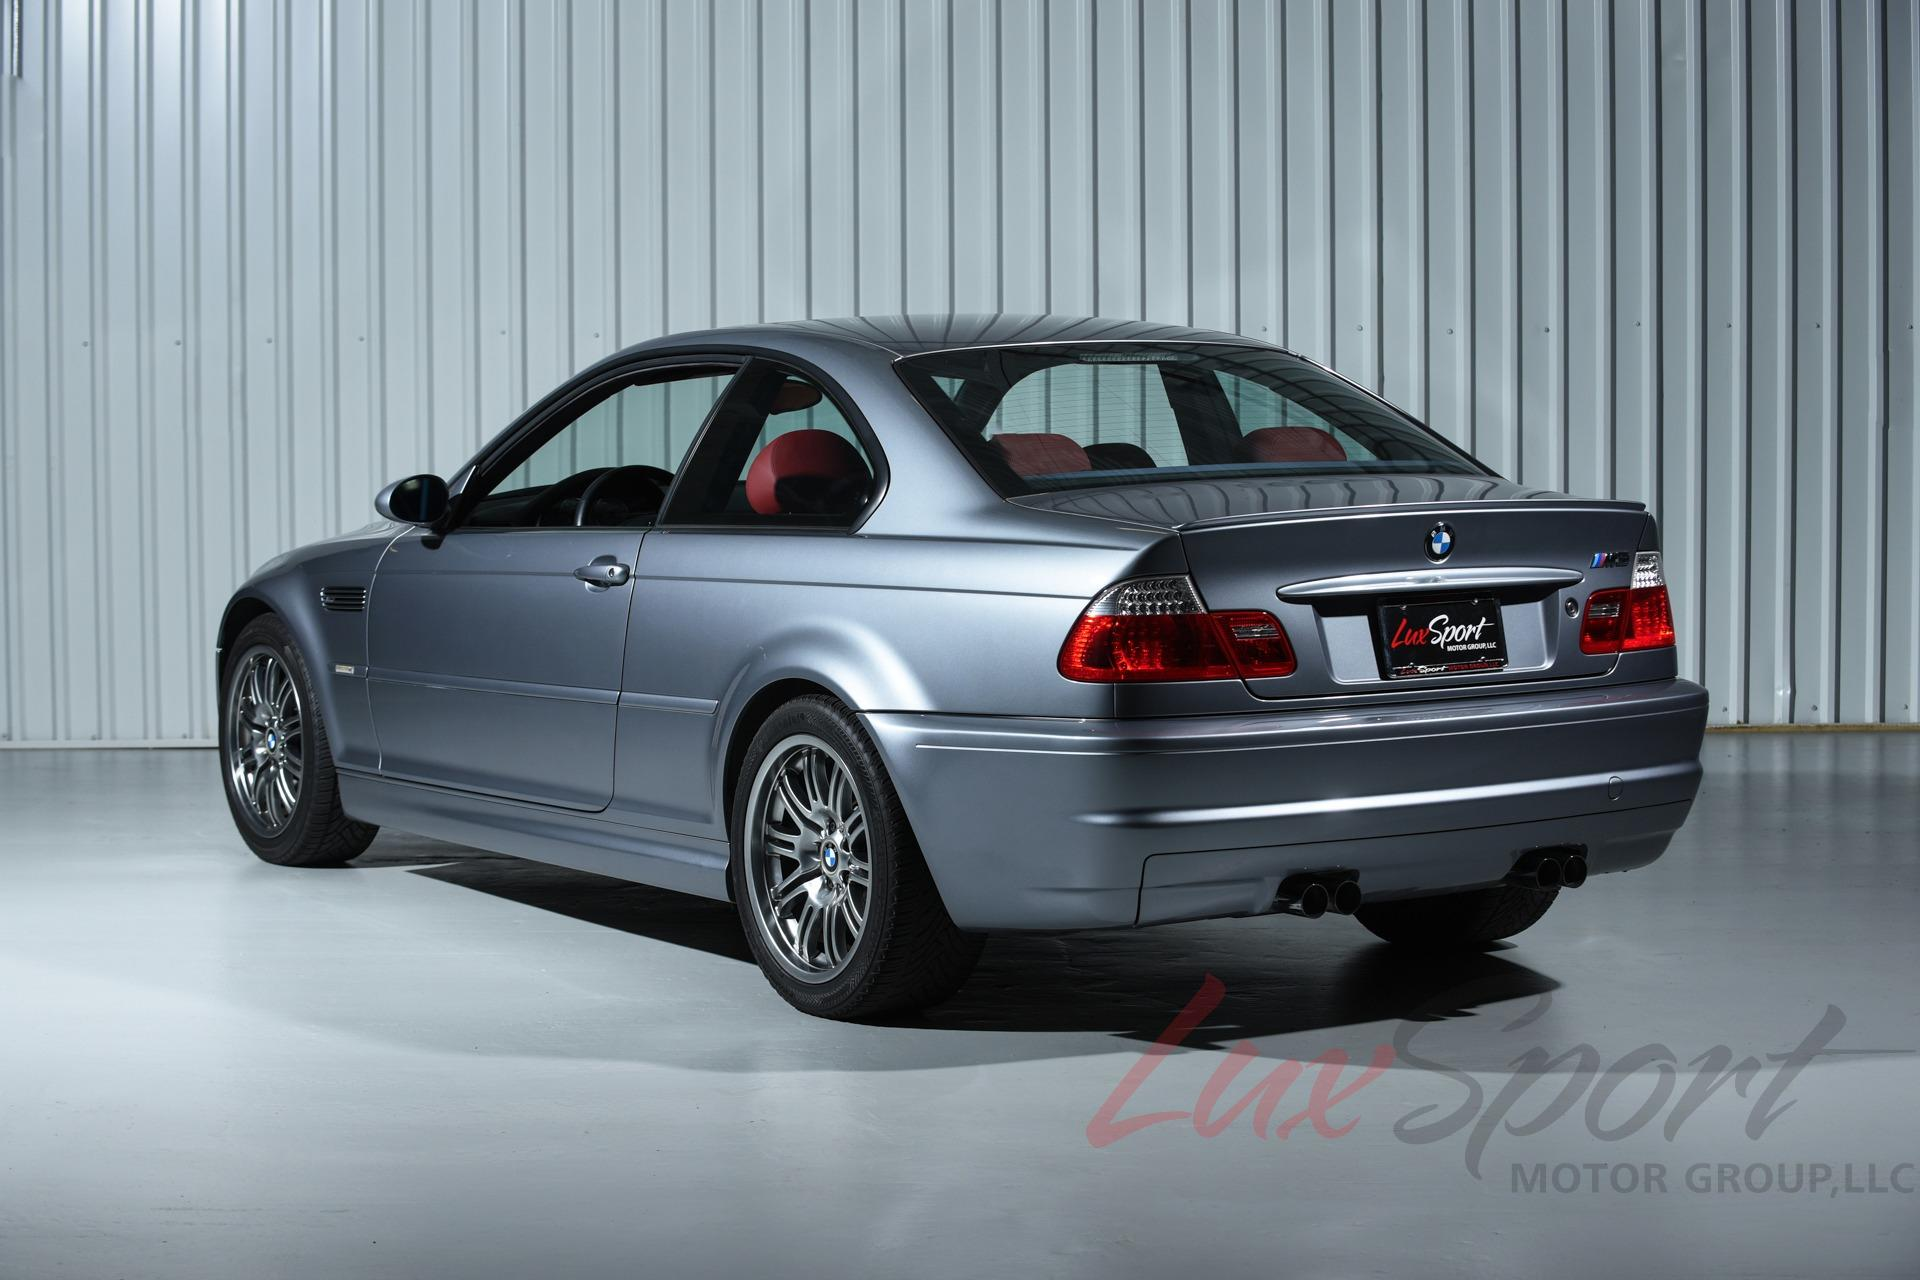 2003 bmw m3 coupe stock 2003105 for sale near new hyde park ny ny bmw dealer. Black Bedroom Furniture Sets. Home Design Ideas